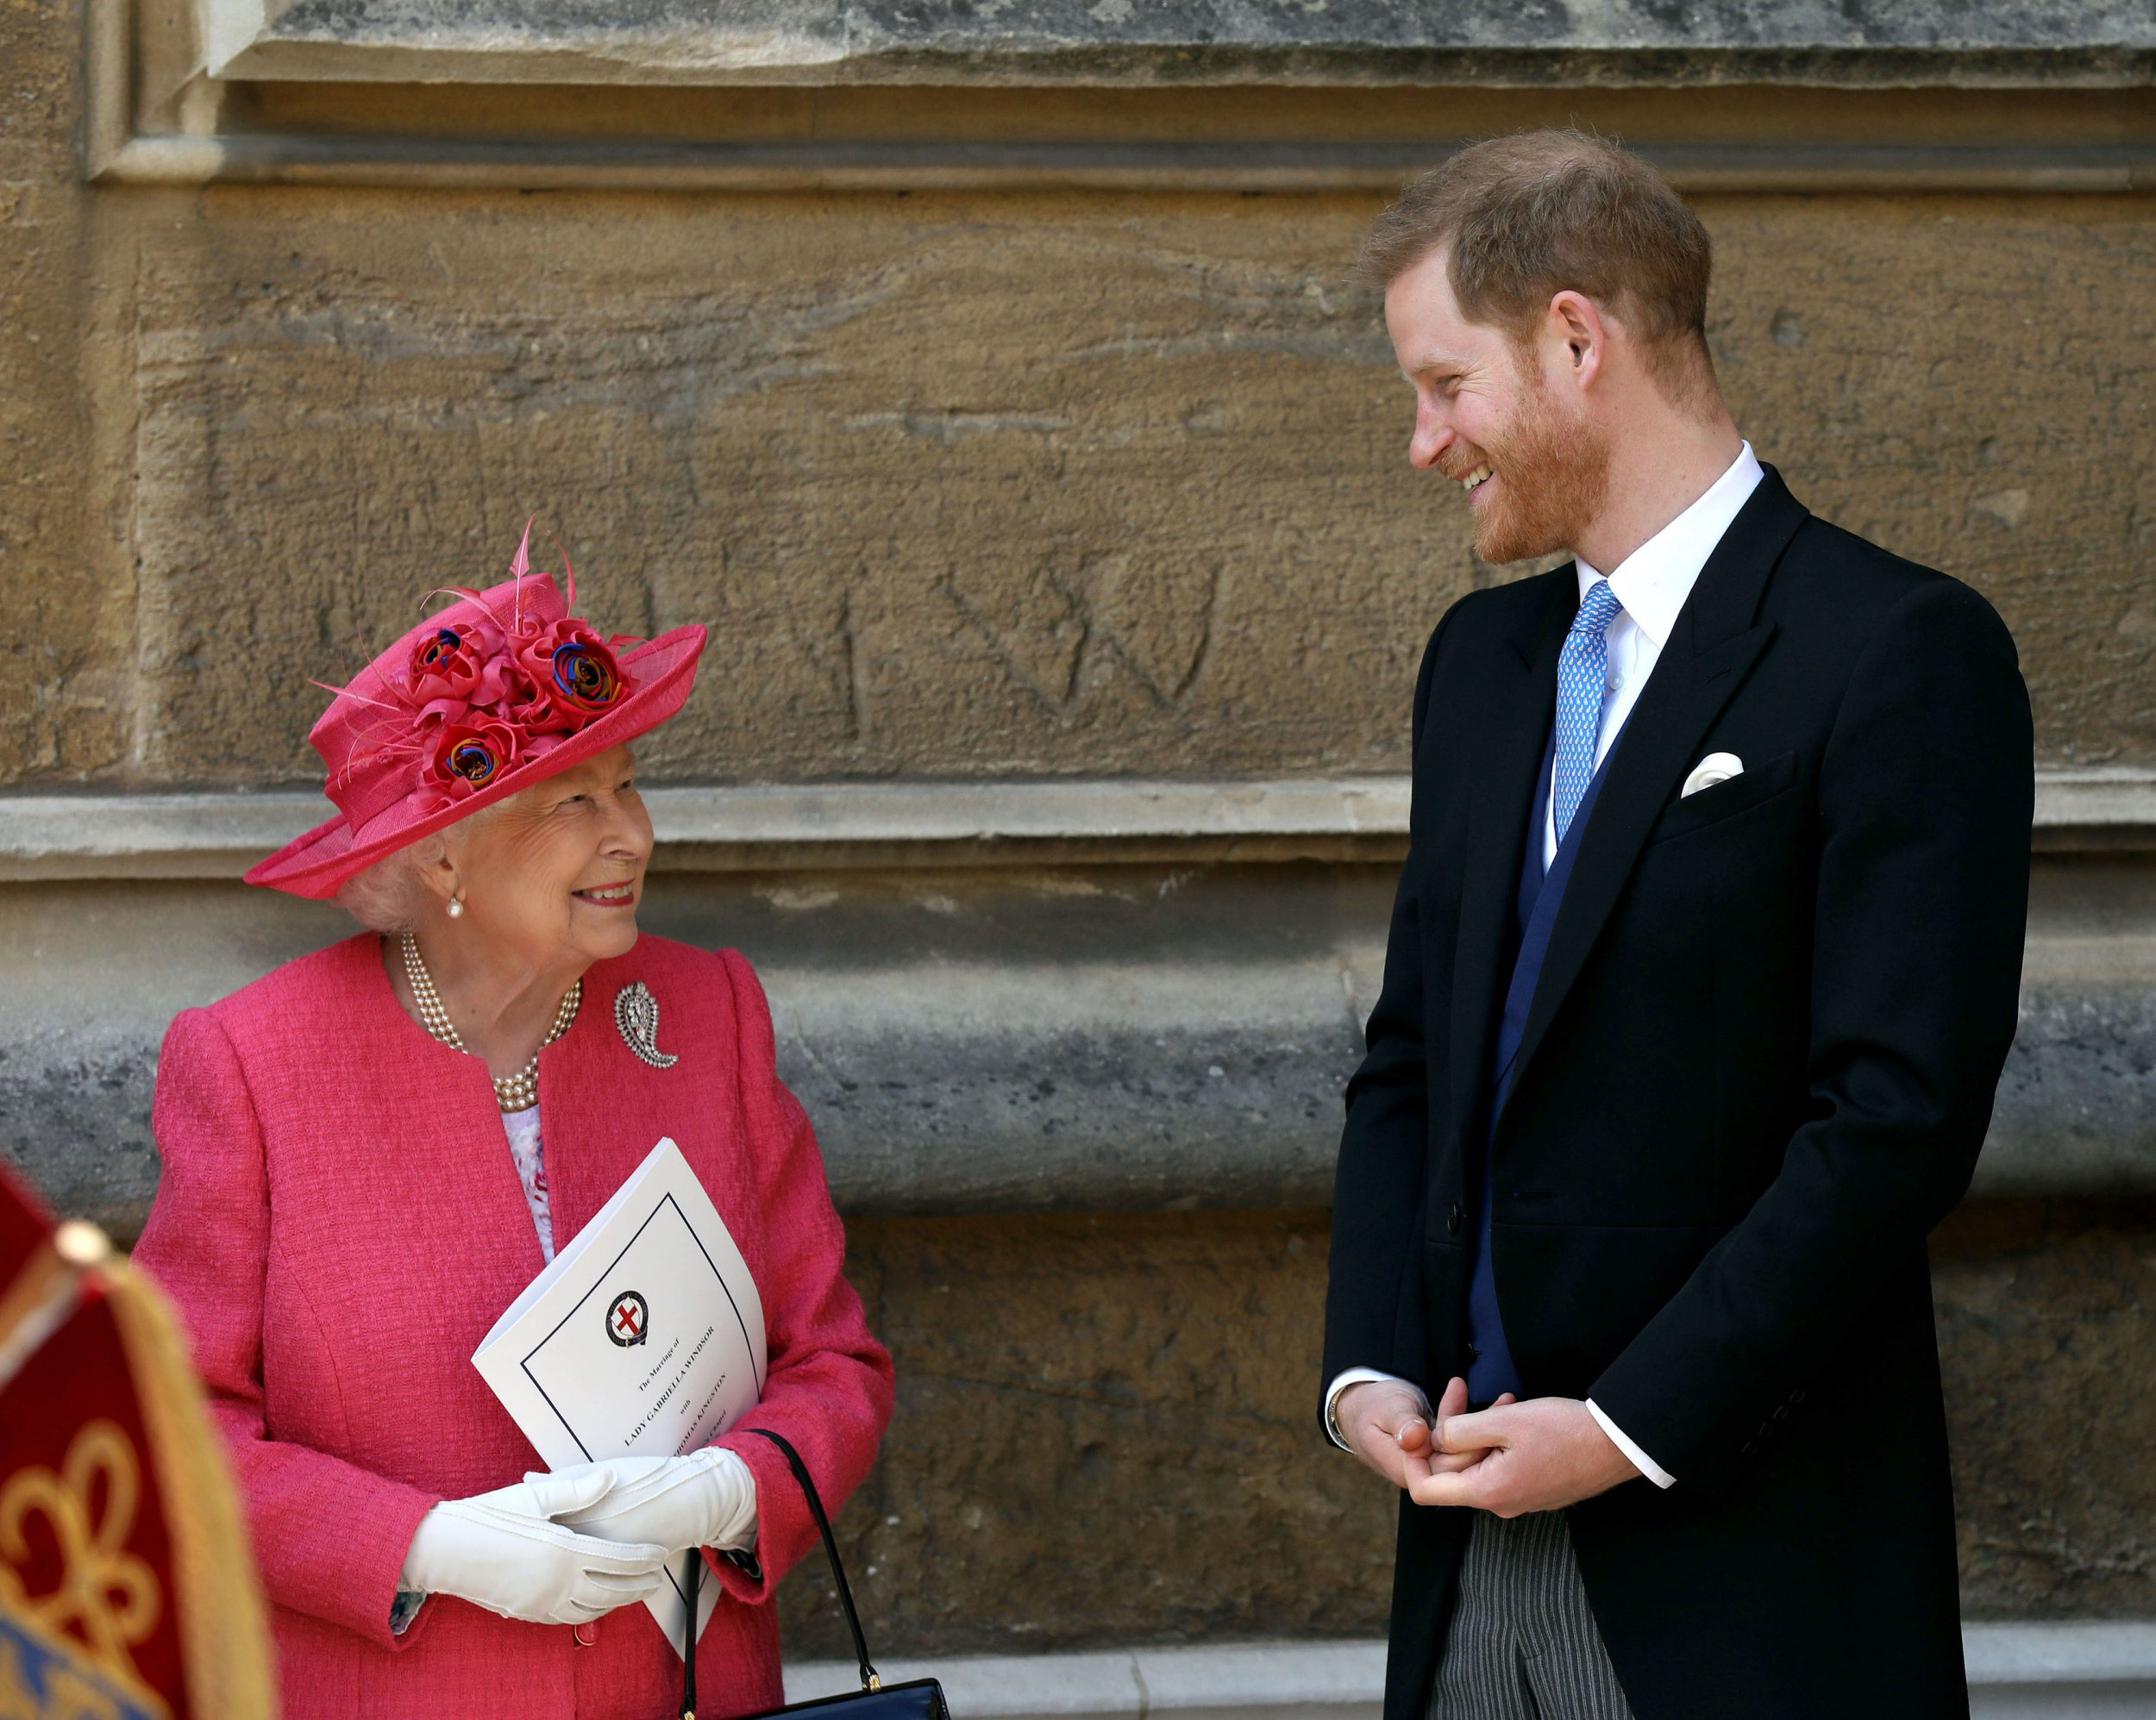 Prince Harry shares joke with Queen in sign of their 'very special relationship'